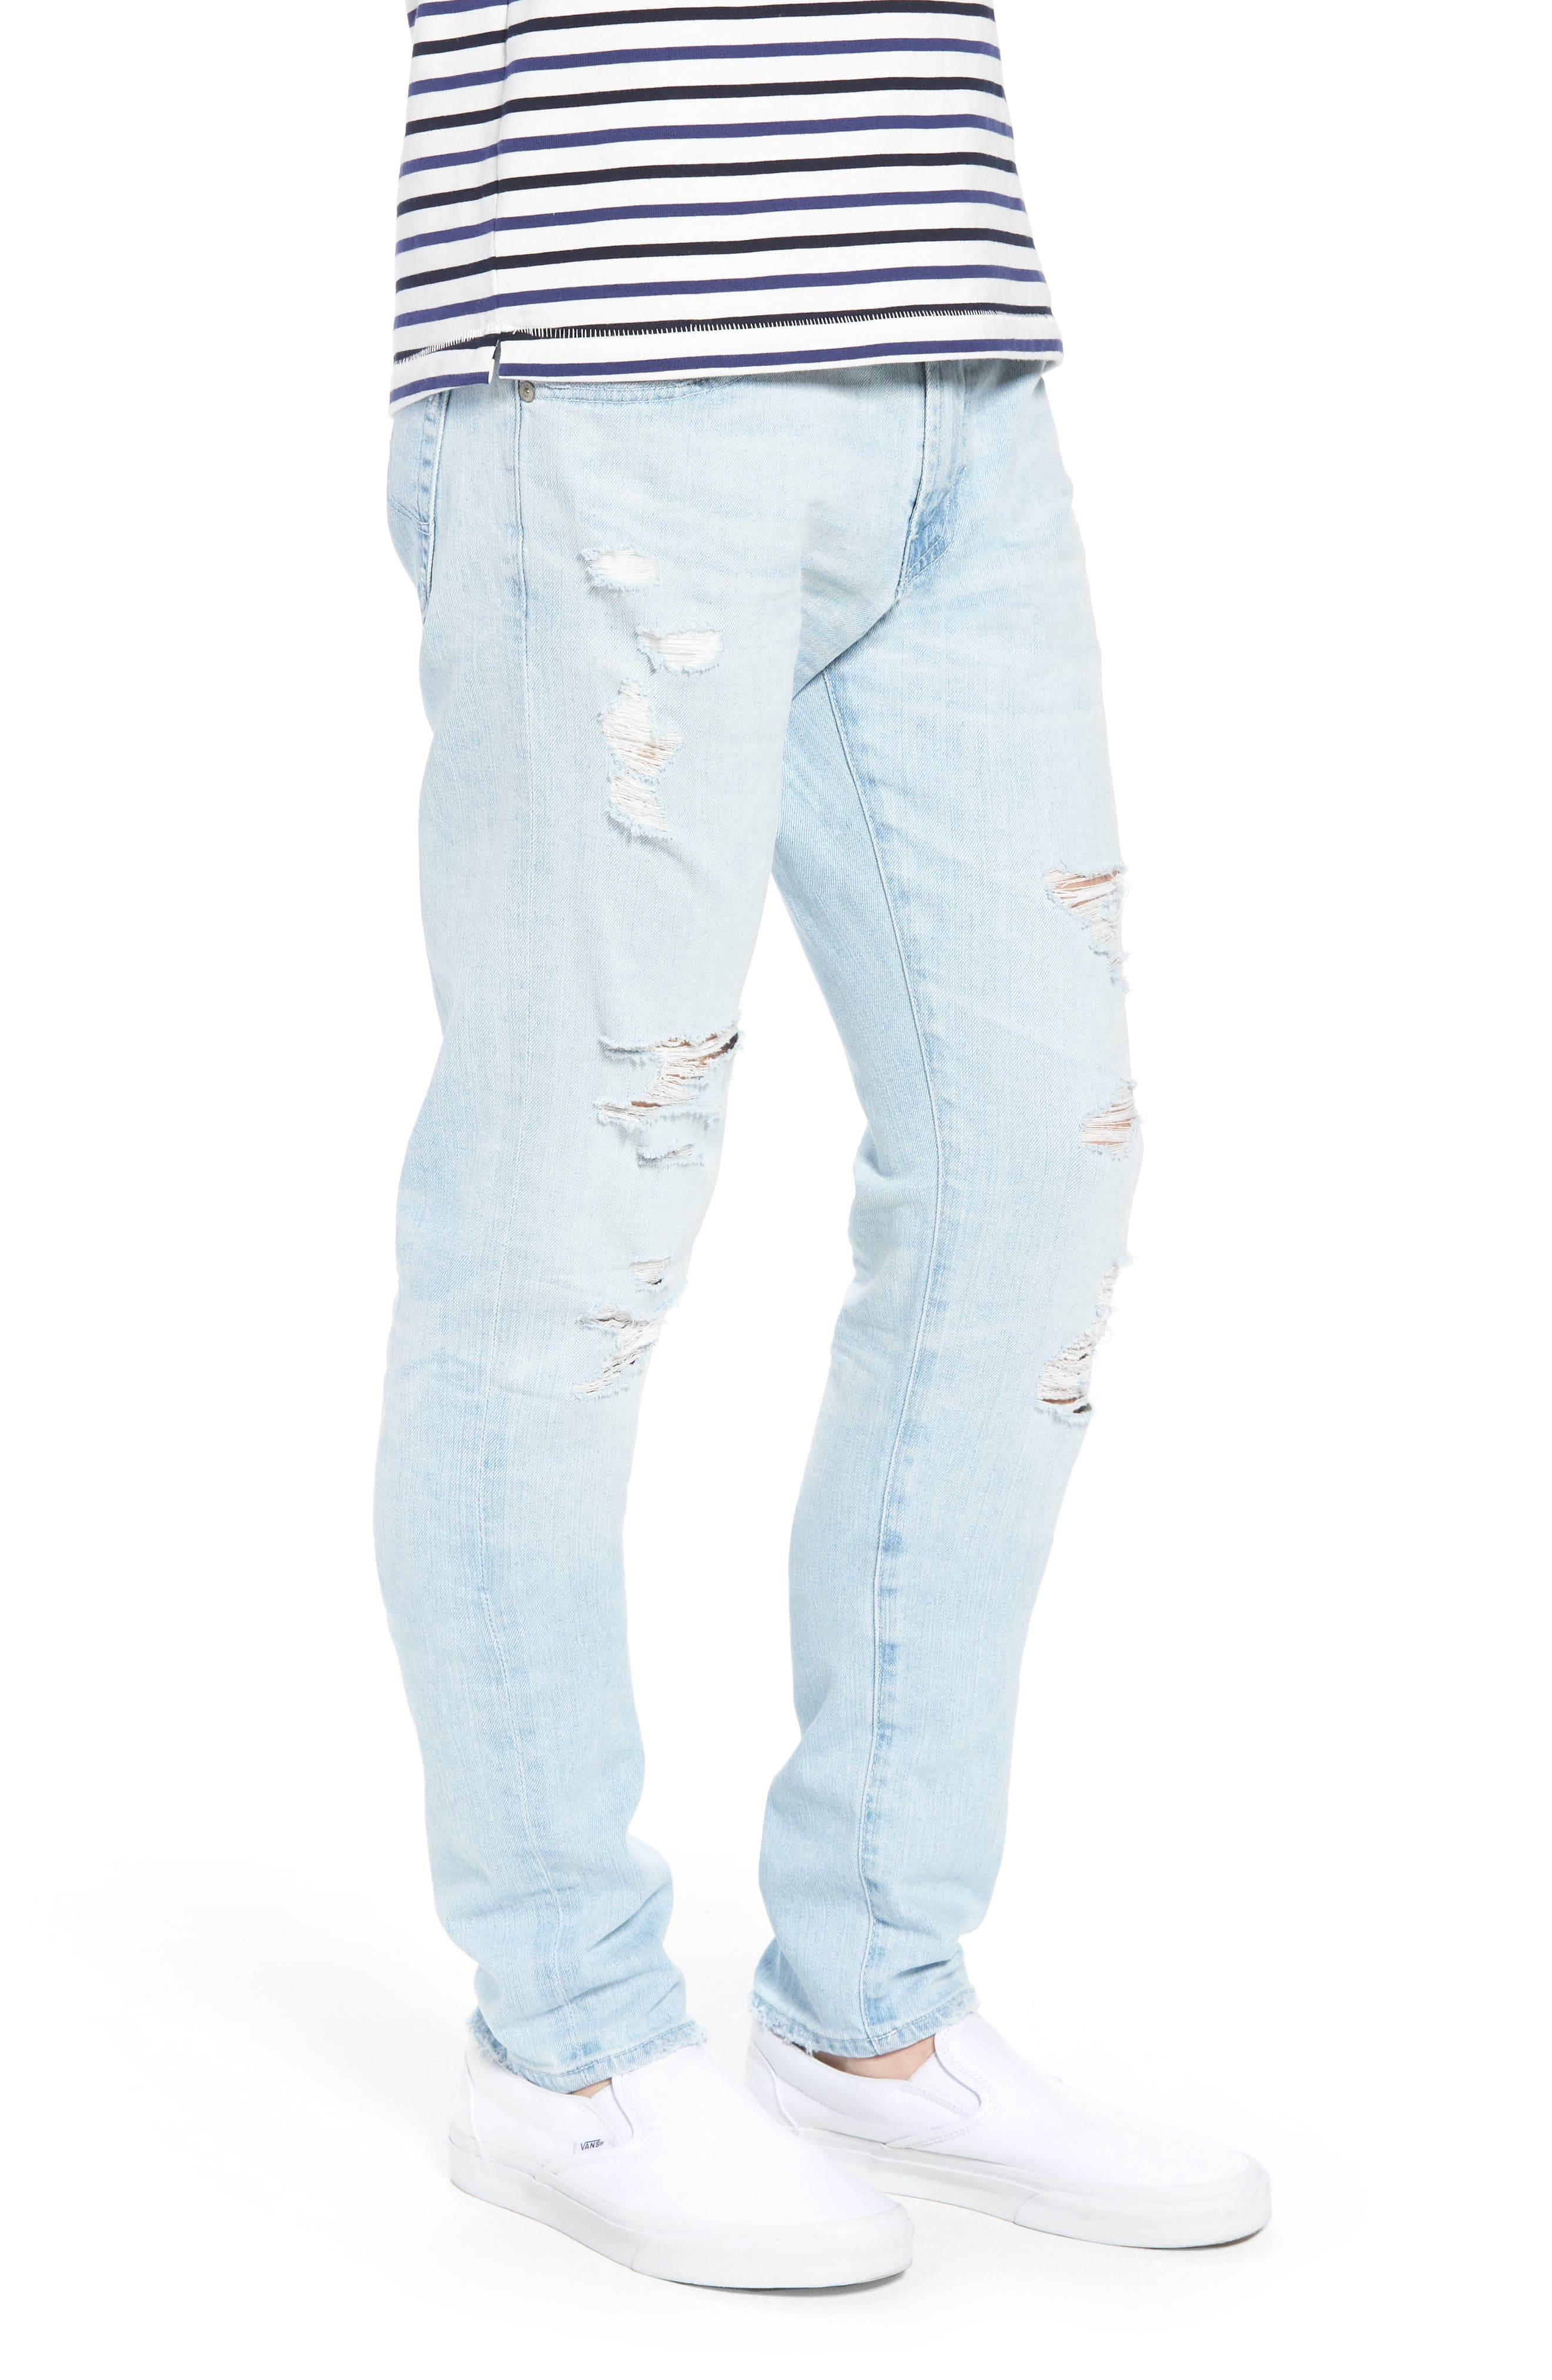 Dylan Skinny Fit Jeans,                             Alternate thumbnail 3, color,                             400